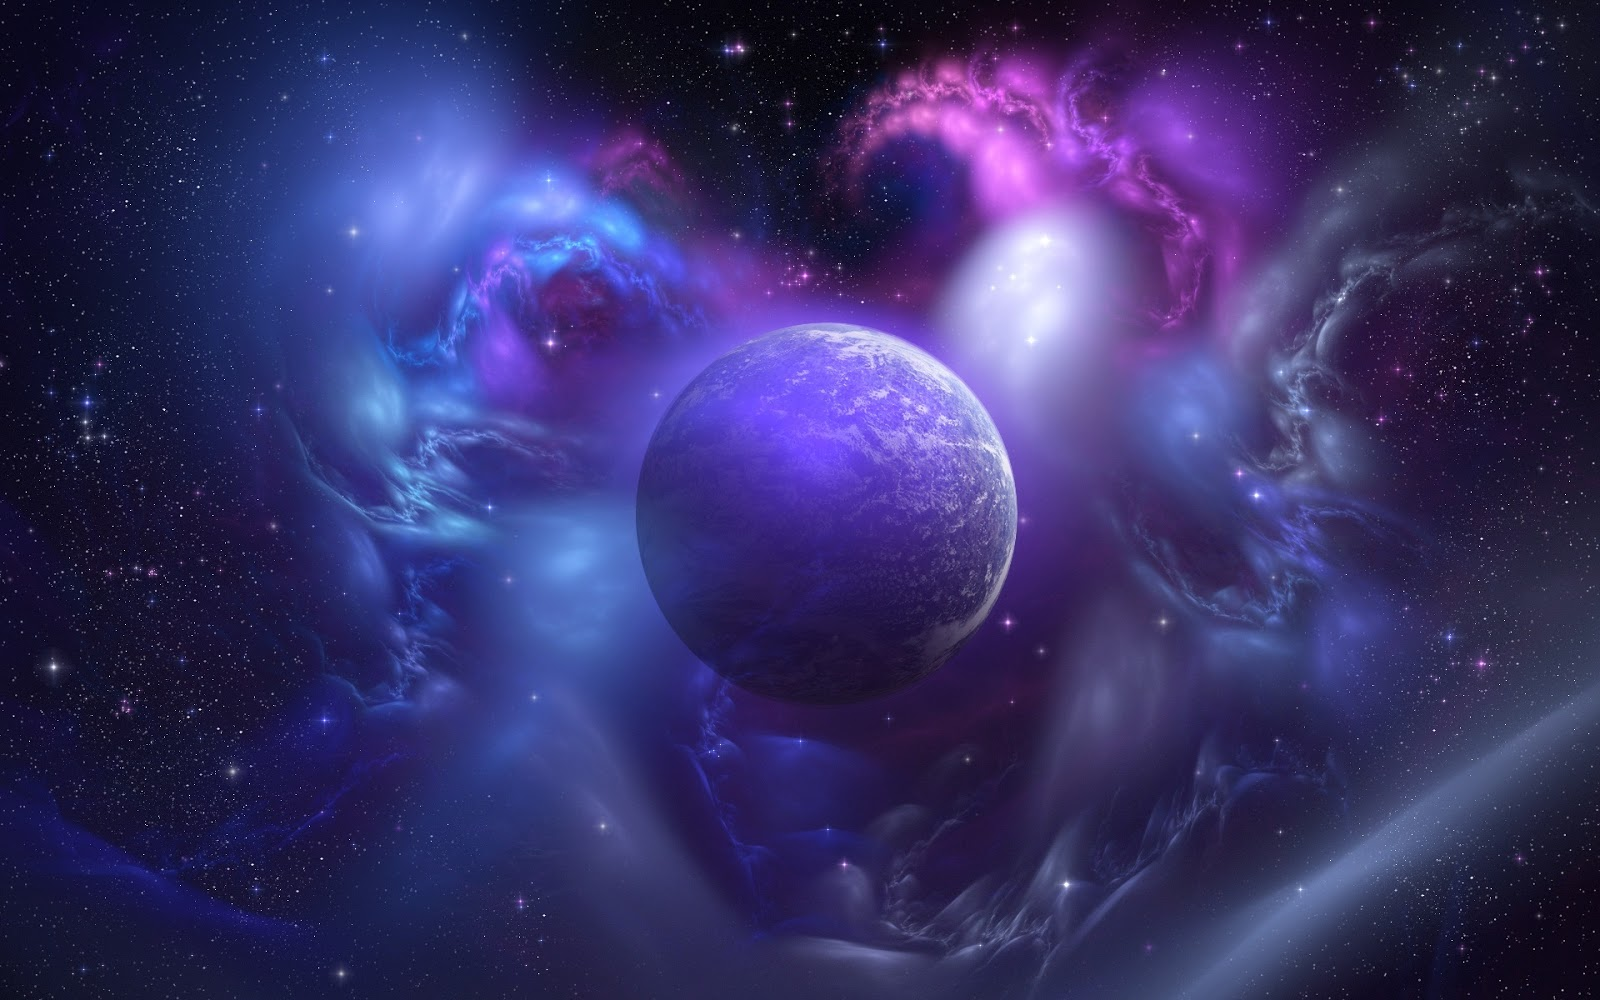 Windows 8 HD Desktop Wallpapers Space Galaxy Wallpapers 4 1600x1000